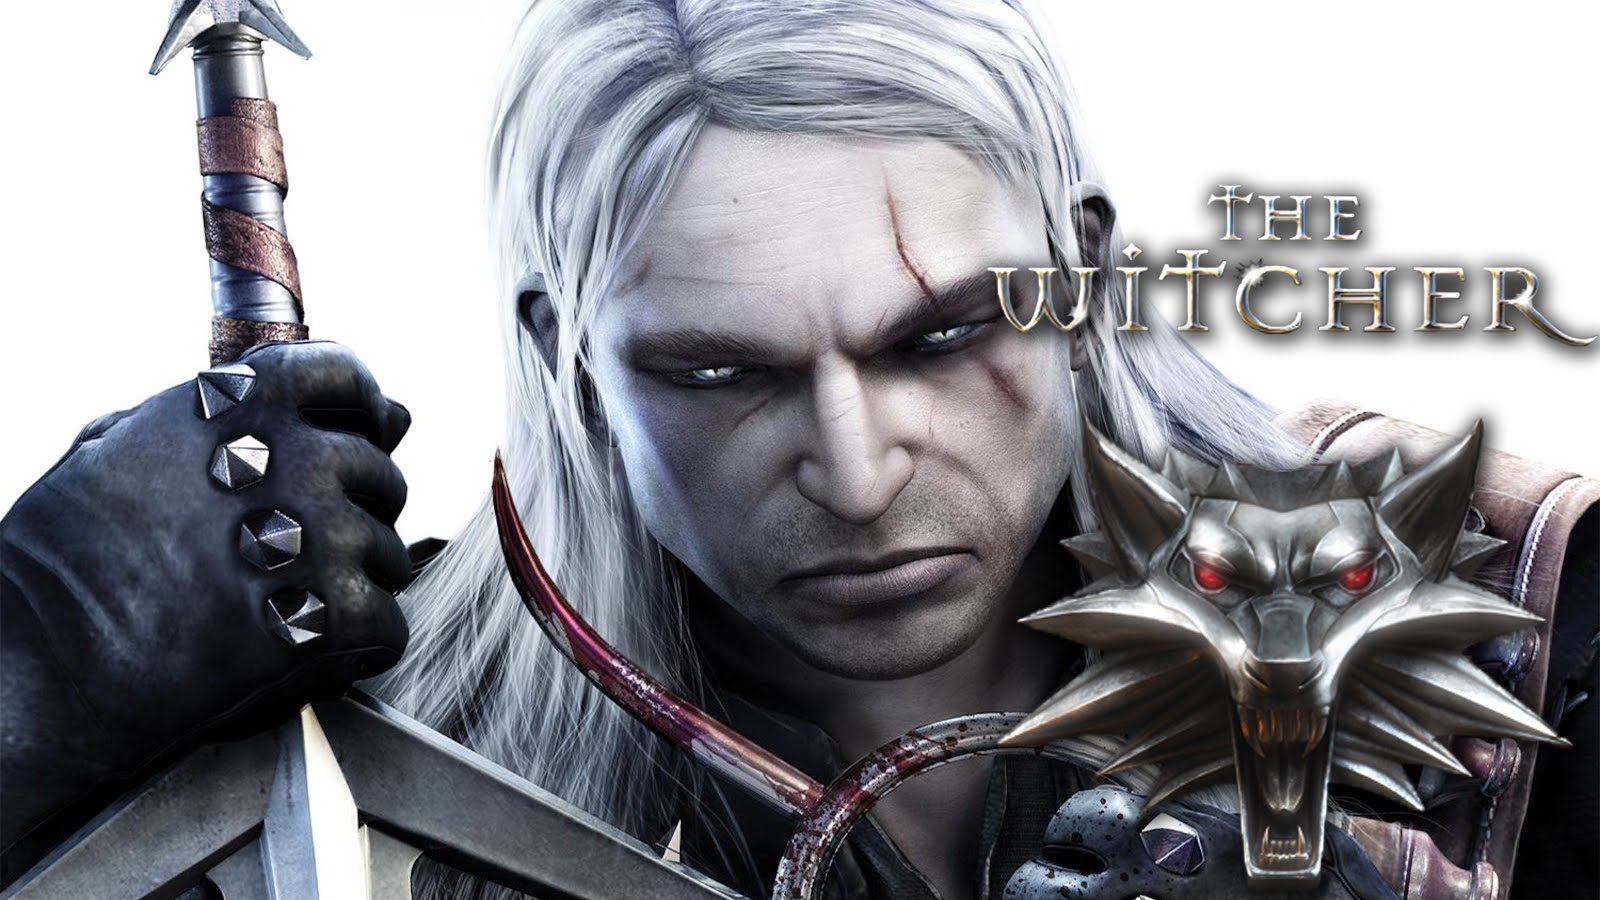 Witcher (The) : Enhanced Edition